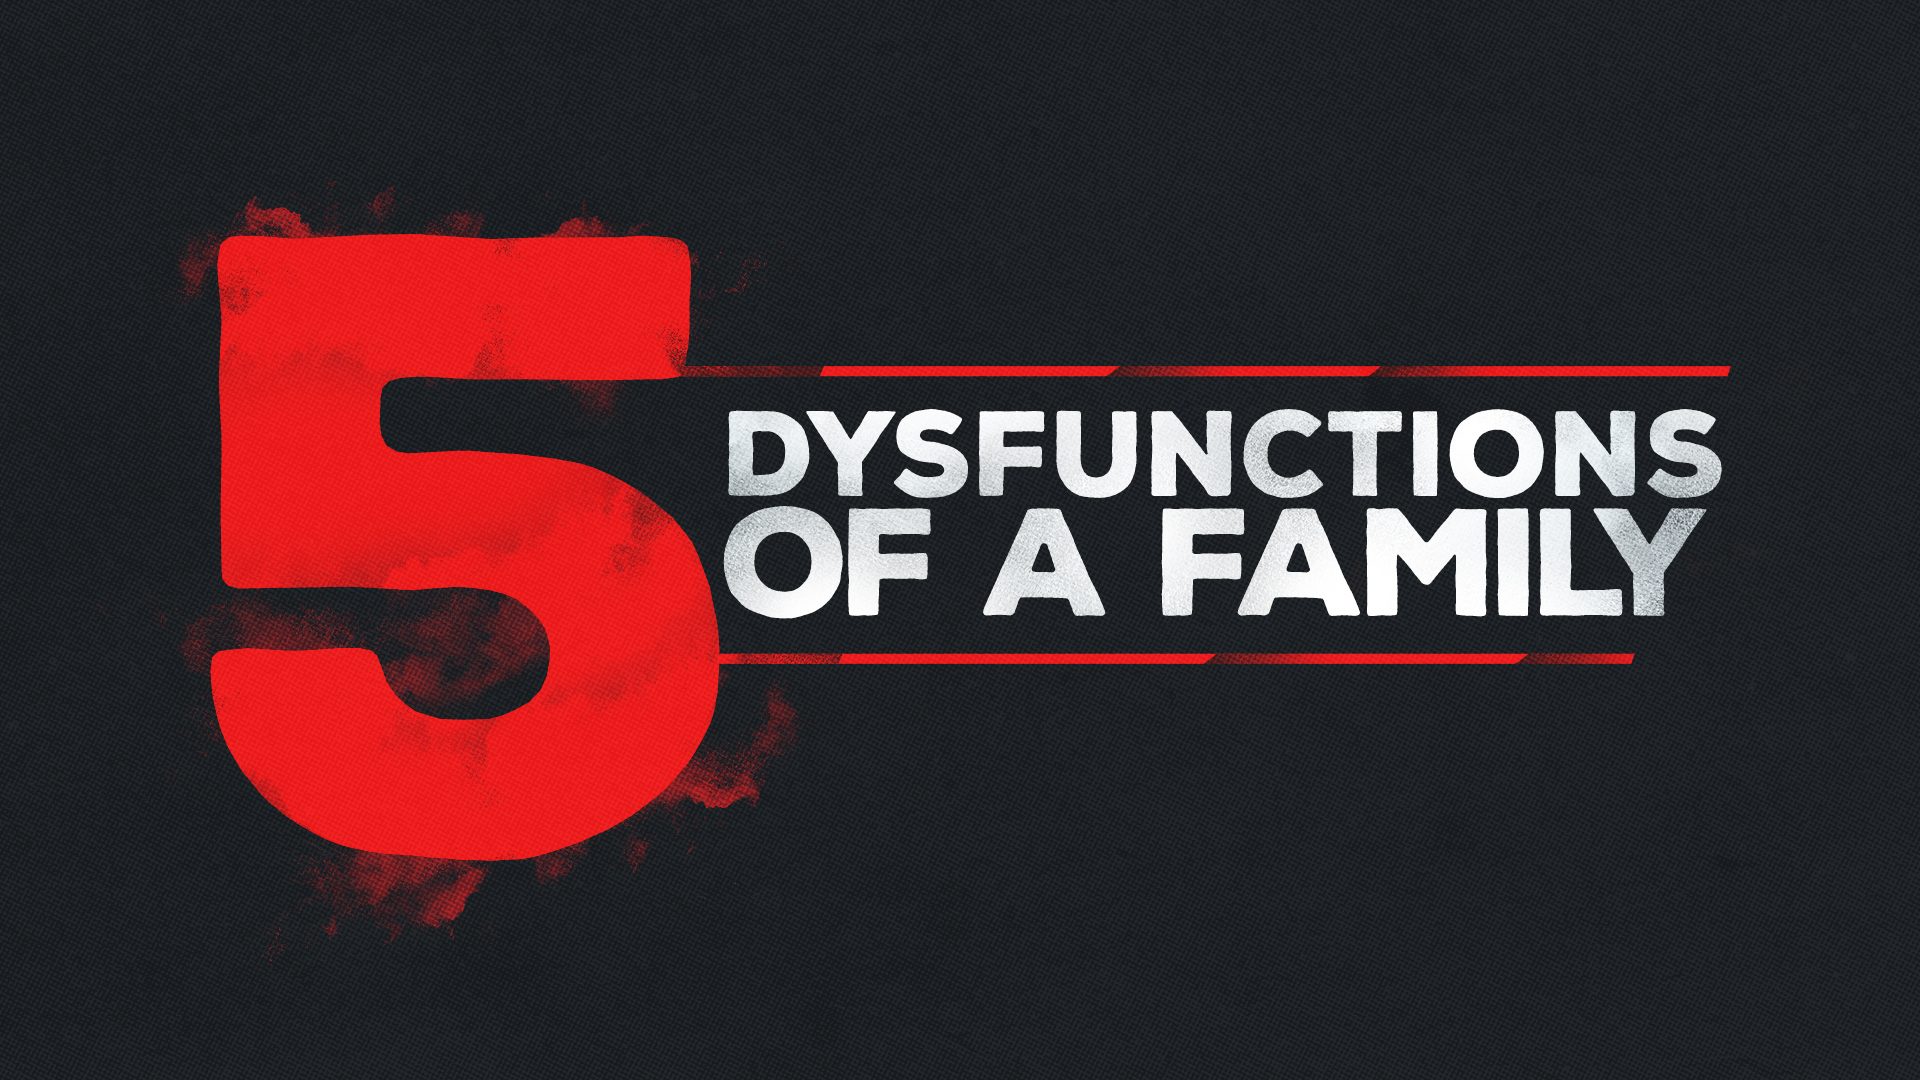 5_dysfunctions_of_a_family-title-1-Wide 16x9.jpg